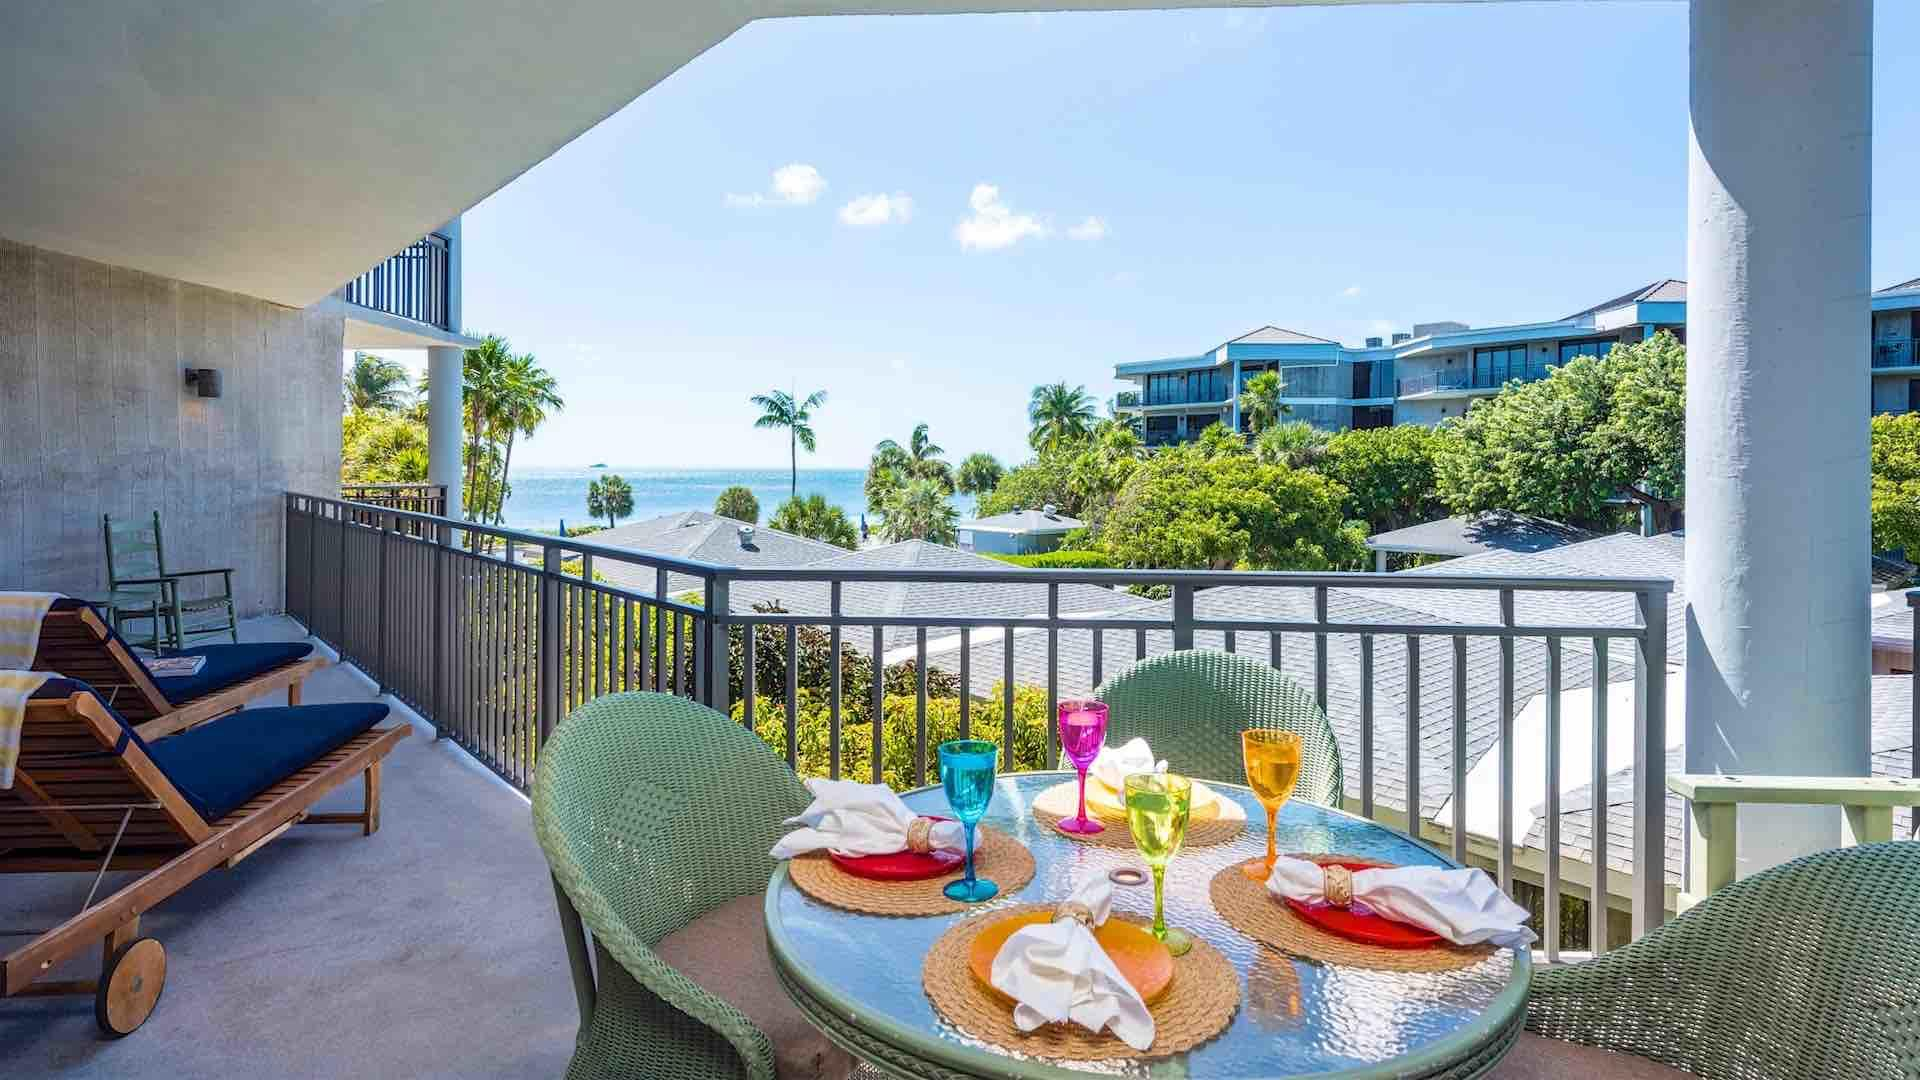 The balcony is a great place to relax, overlooking  the Ocean…